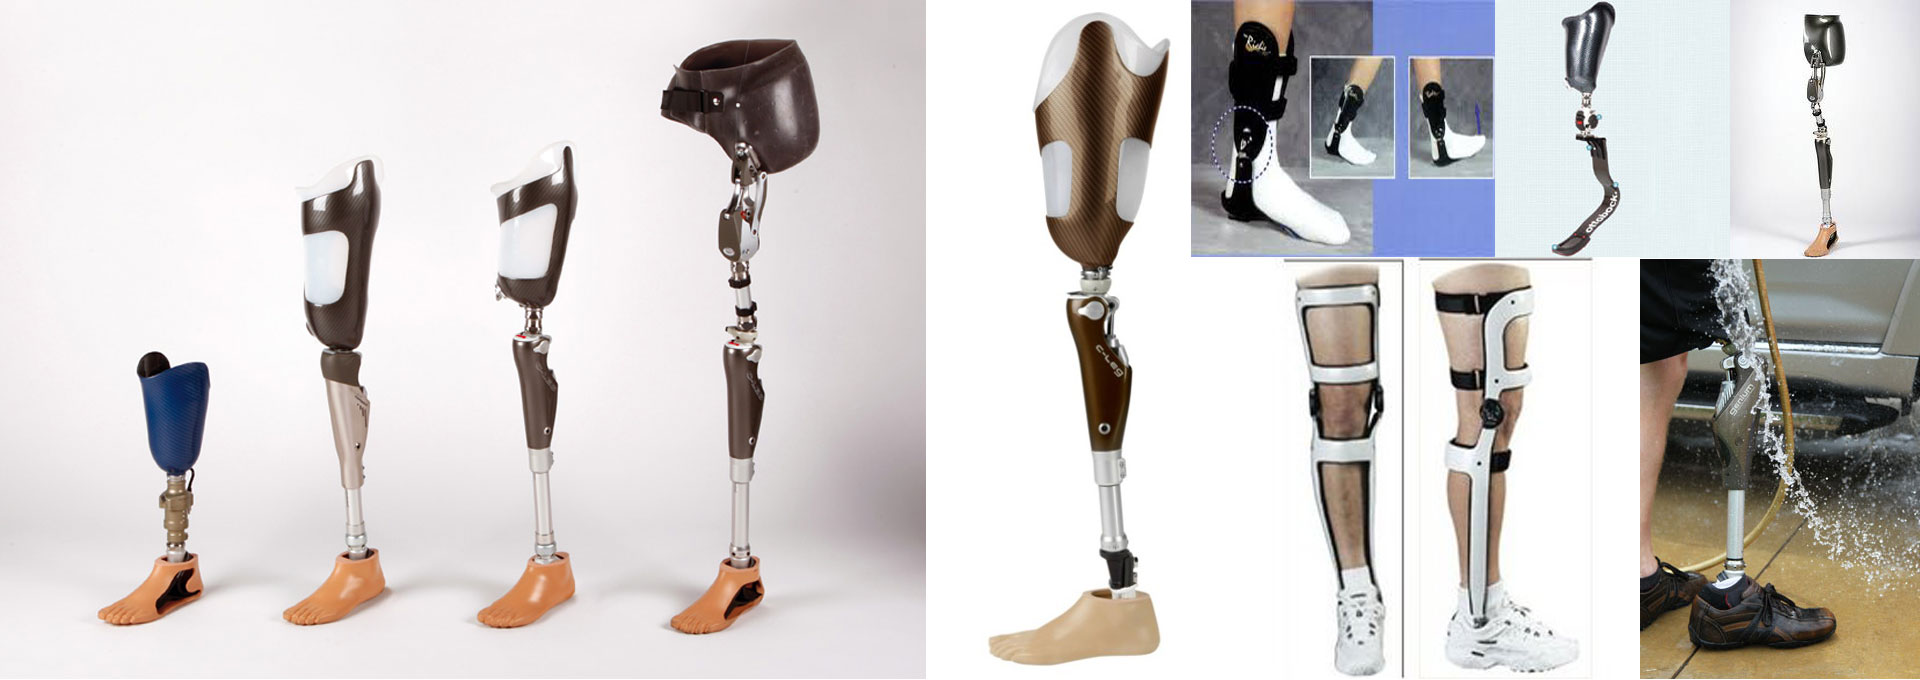 orthopedic prothesis company Learn more about home - prosthetics & orthotics - ☎ call 213-482-5226 today.